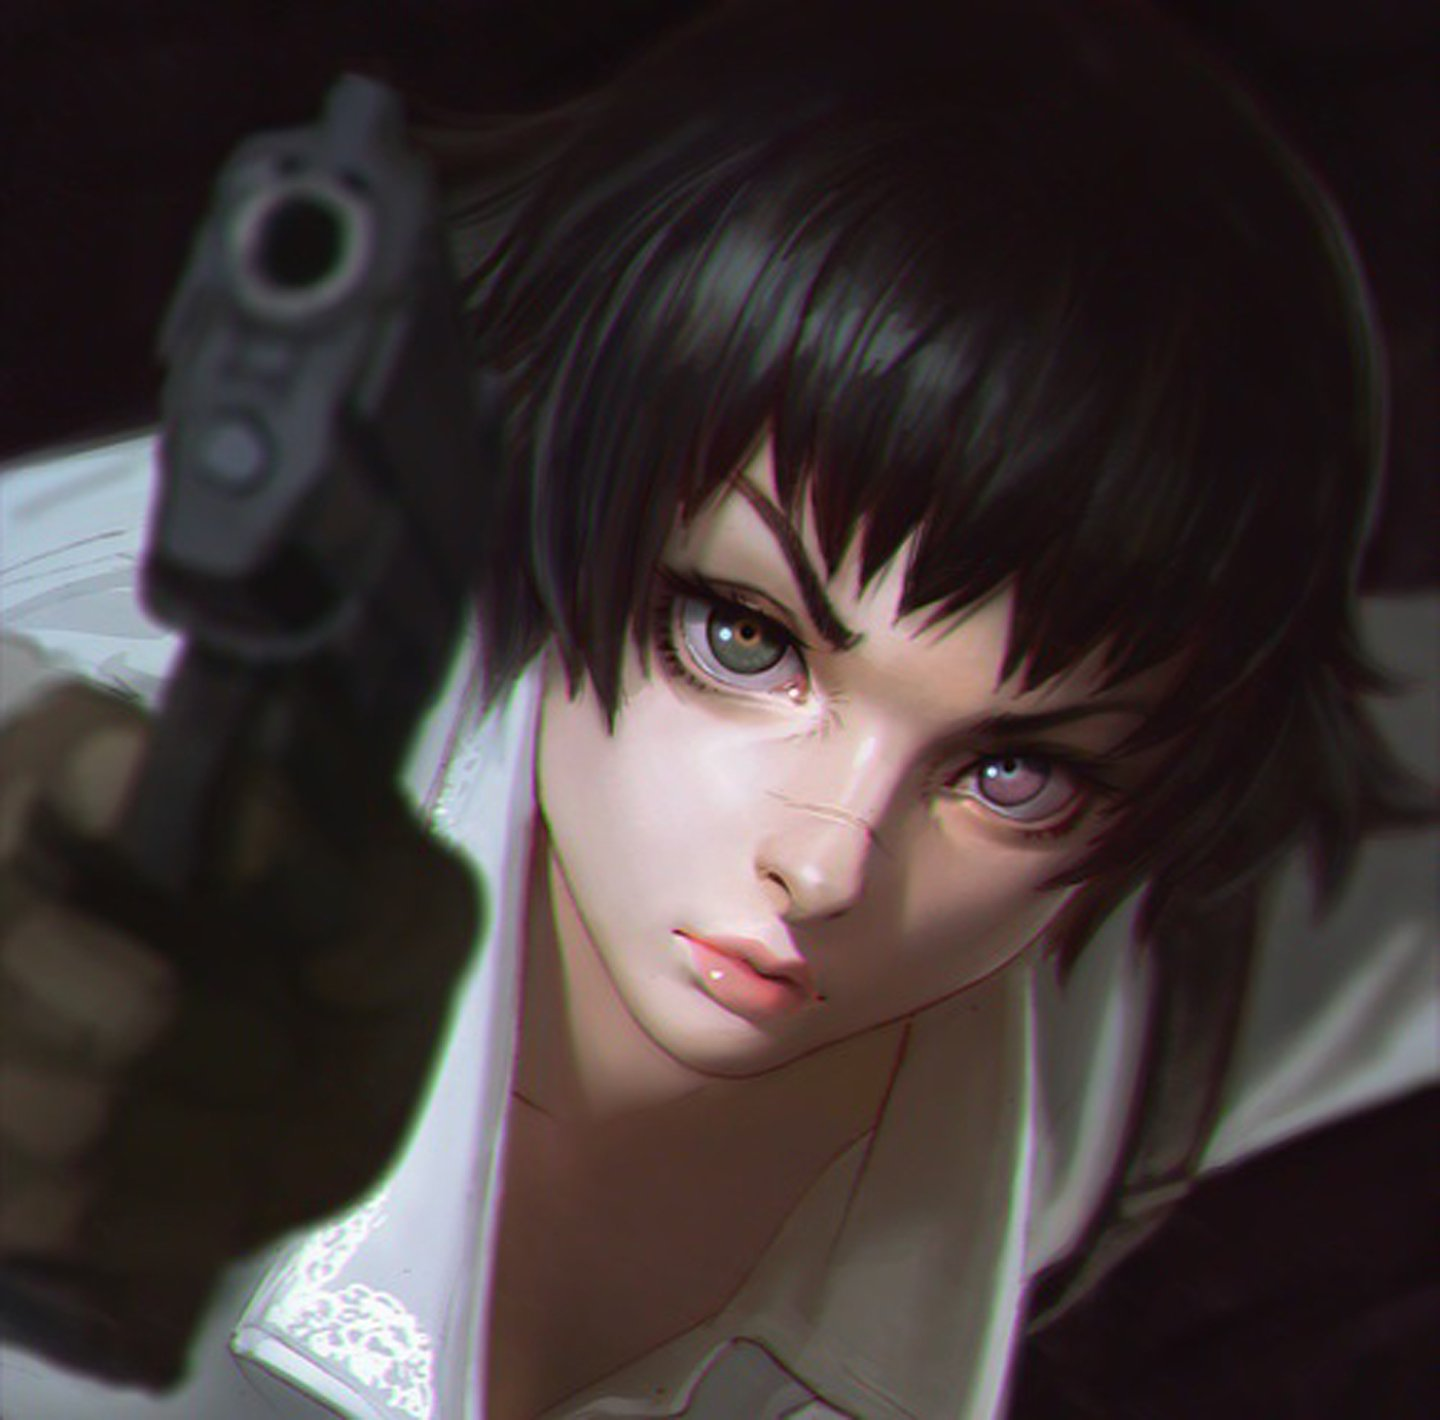 Anime anime girl black hair devil may cry gun lady short hair wallpaper